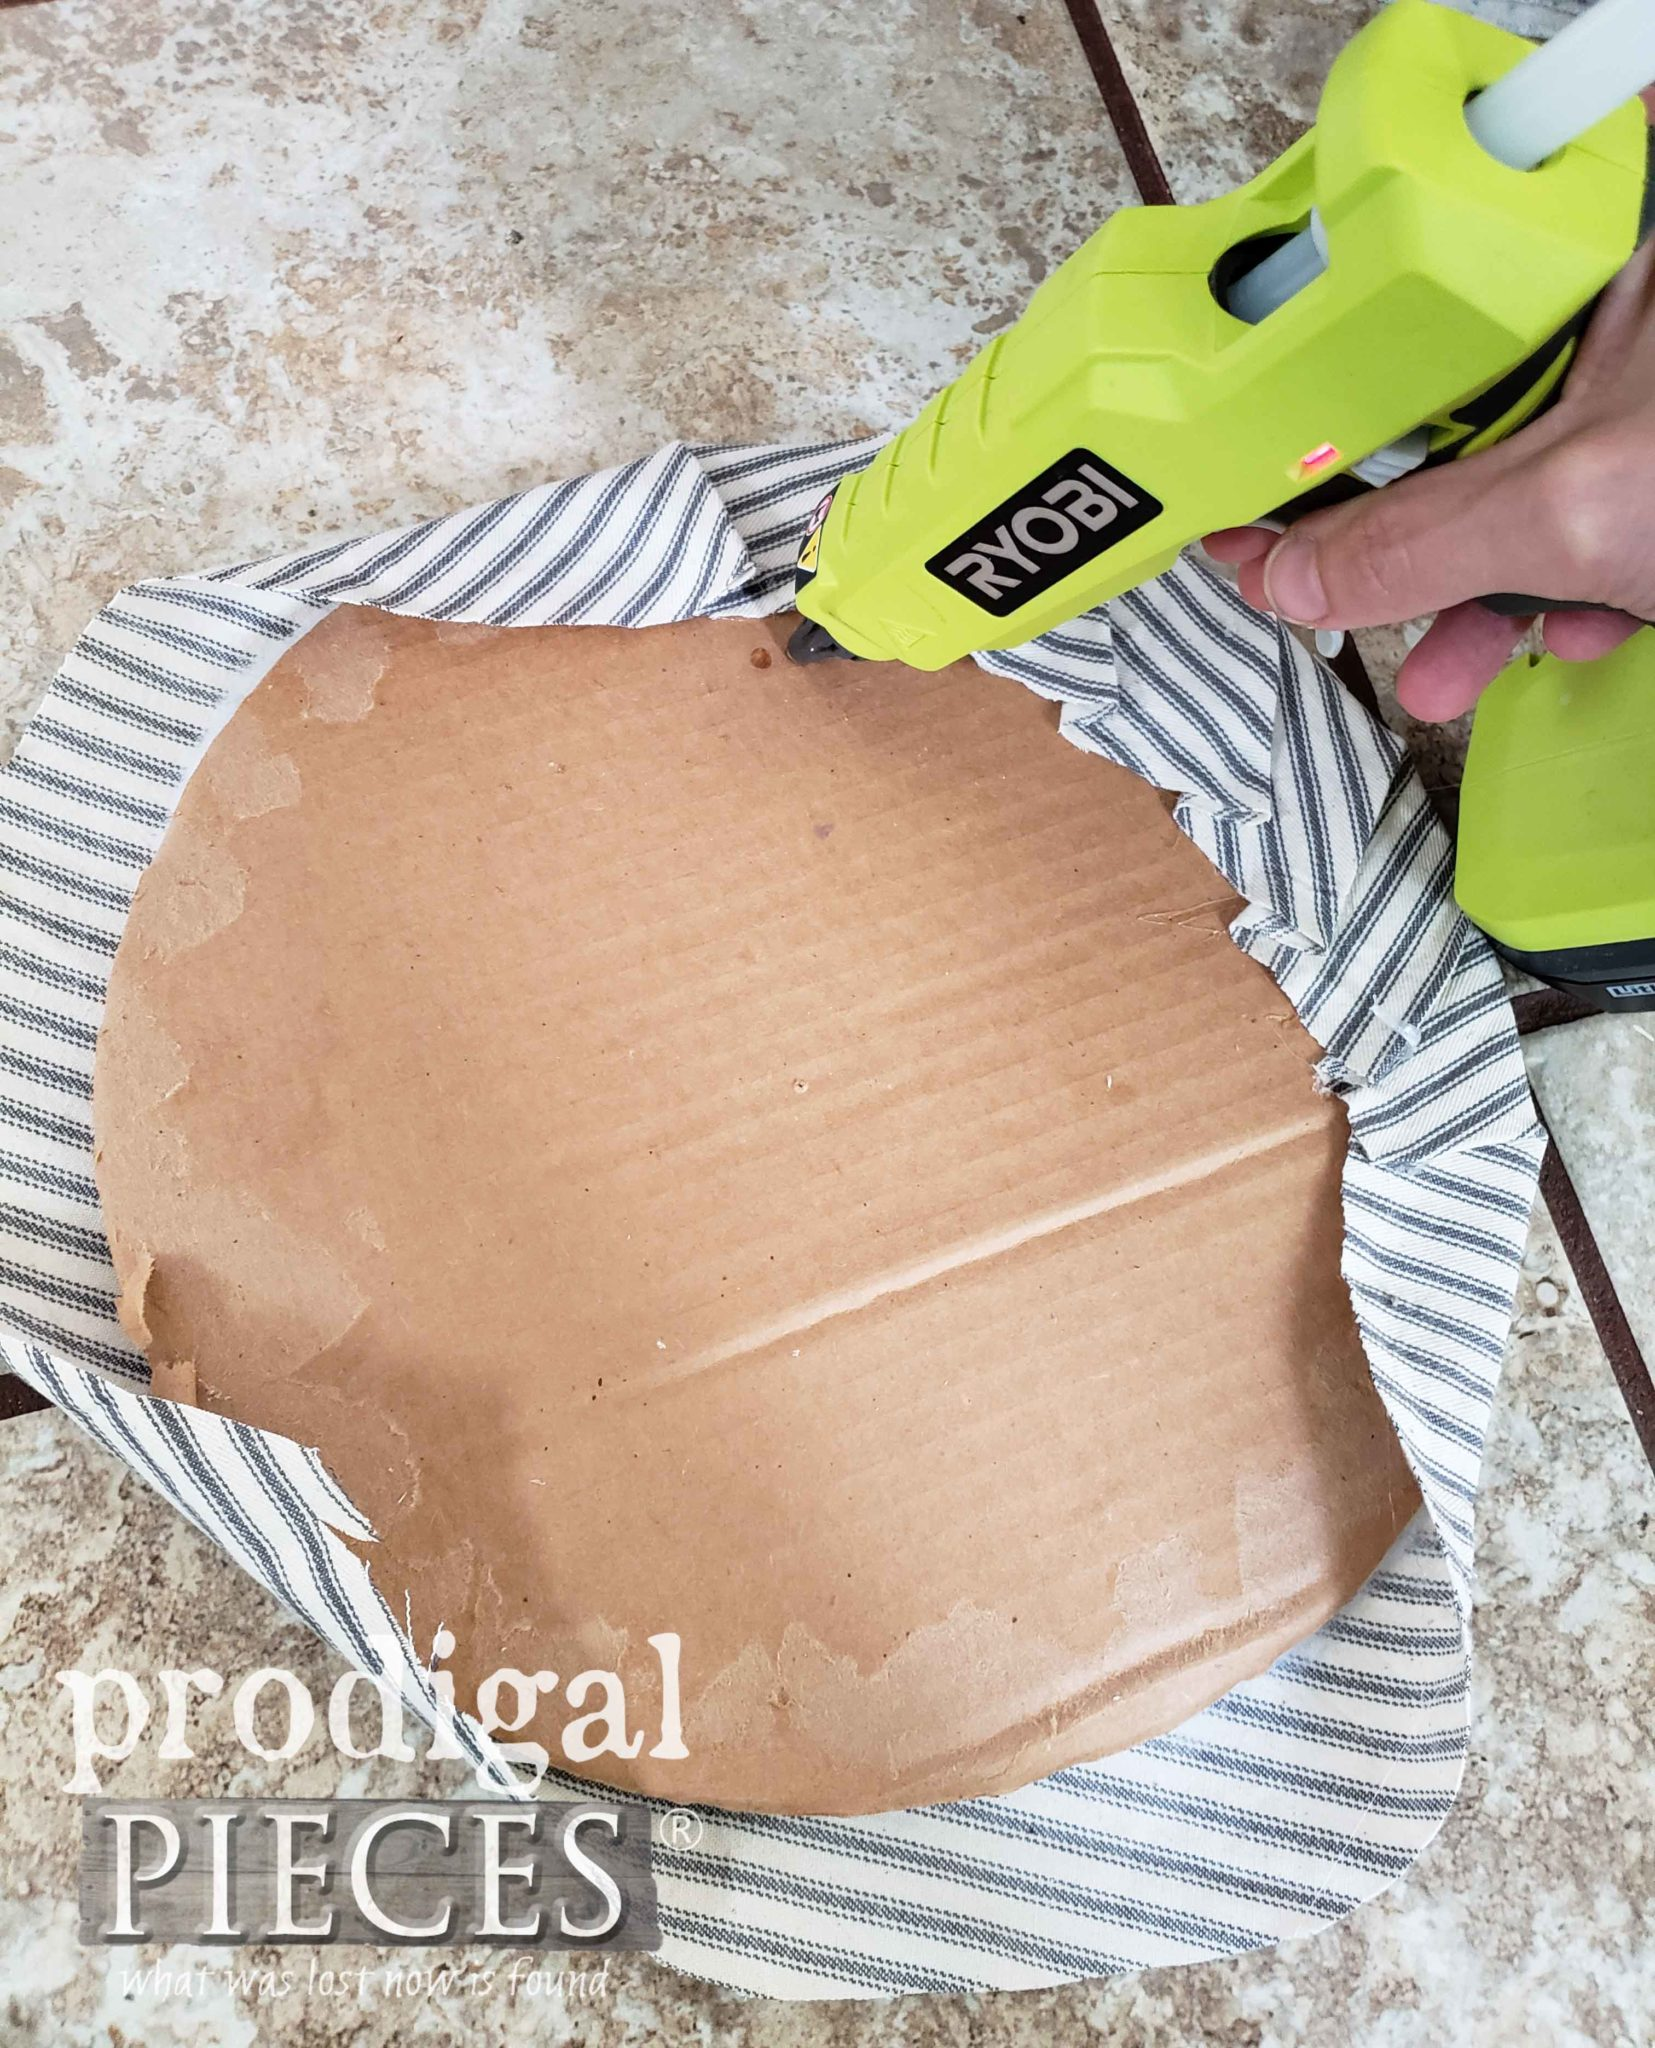 Gluing Upholstery with Ryobi Cordless Hot Glue Gun | prodigalpieces.com